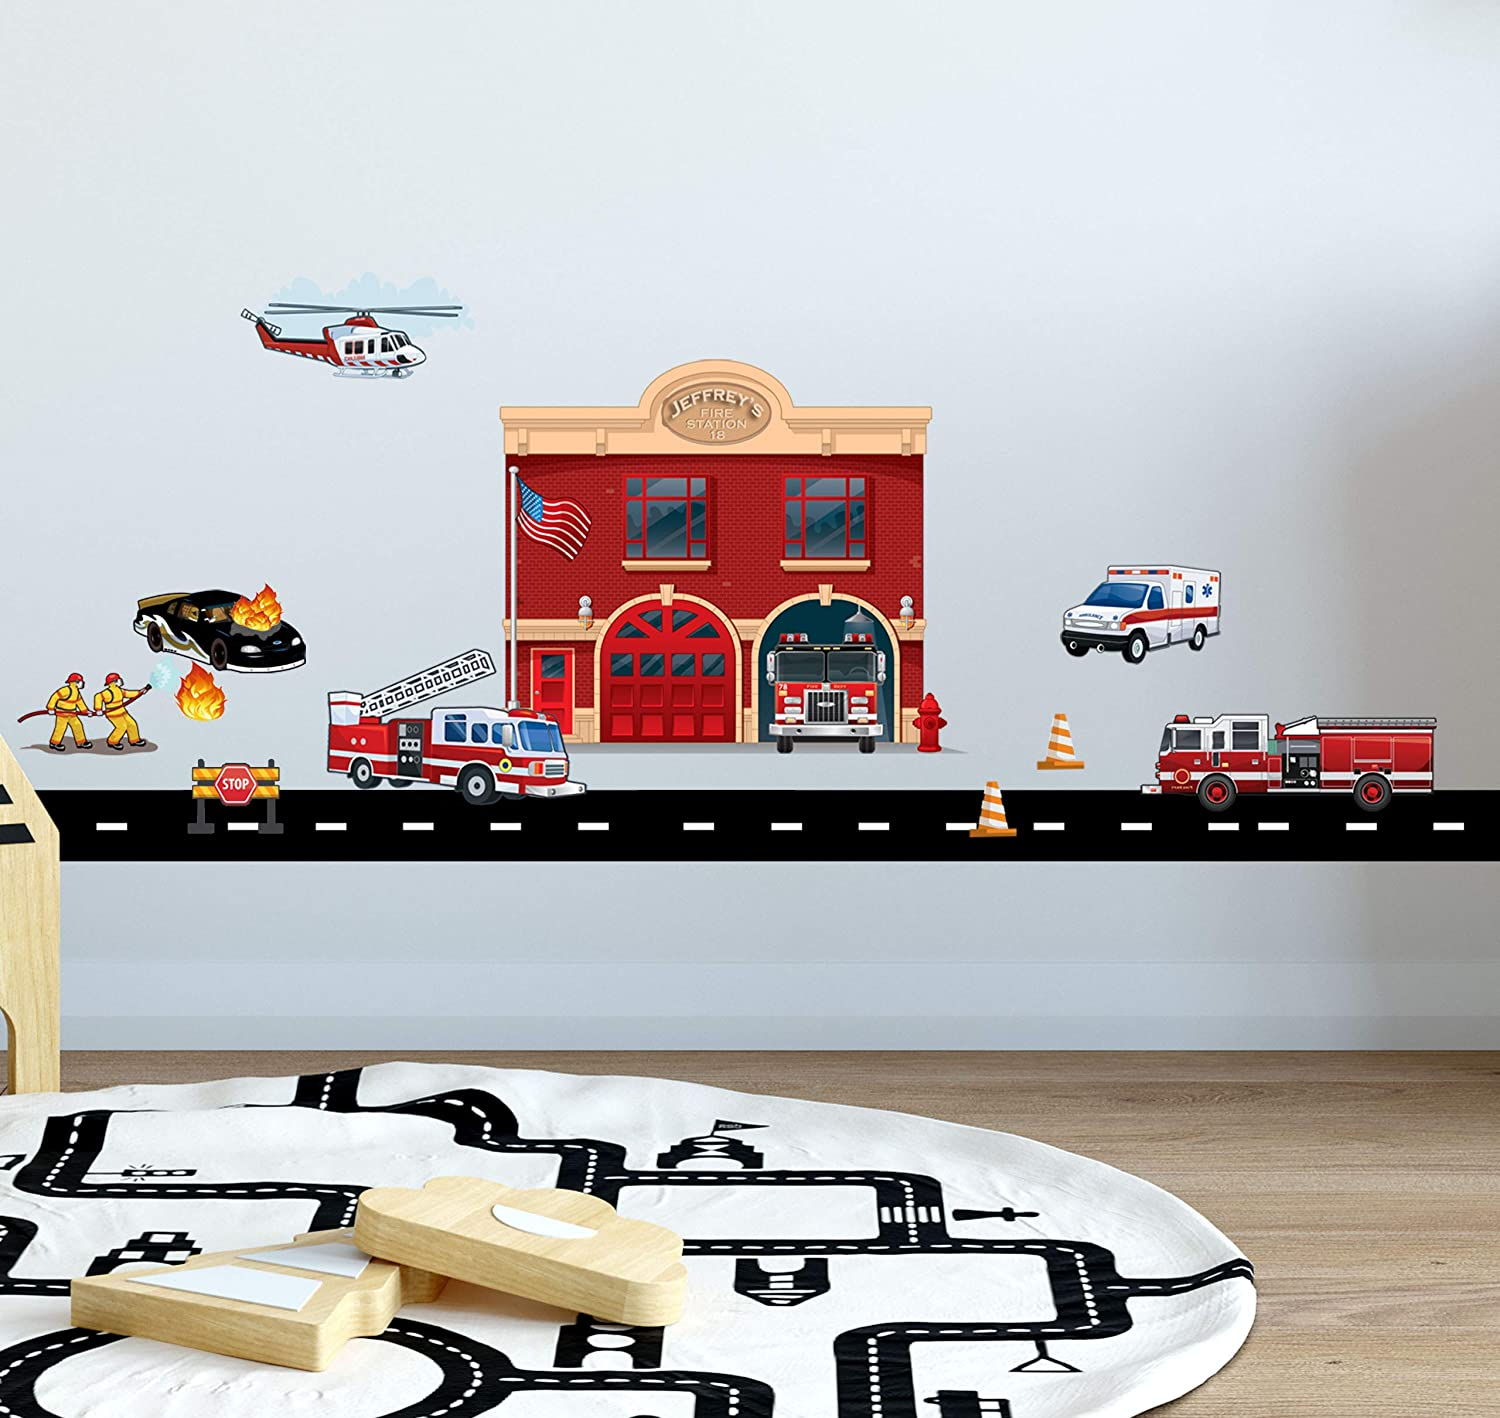 Fire Station Department Mural Fire Truck Wall Decals Stickers, Firefighters & Vehicles Theme Boys Bedroom Wall Decor DIY Toddler Vinyl Decoration Playroom Birthday Gift Idea